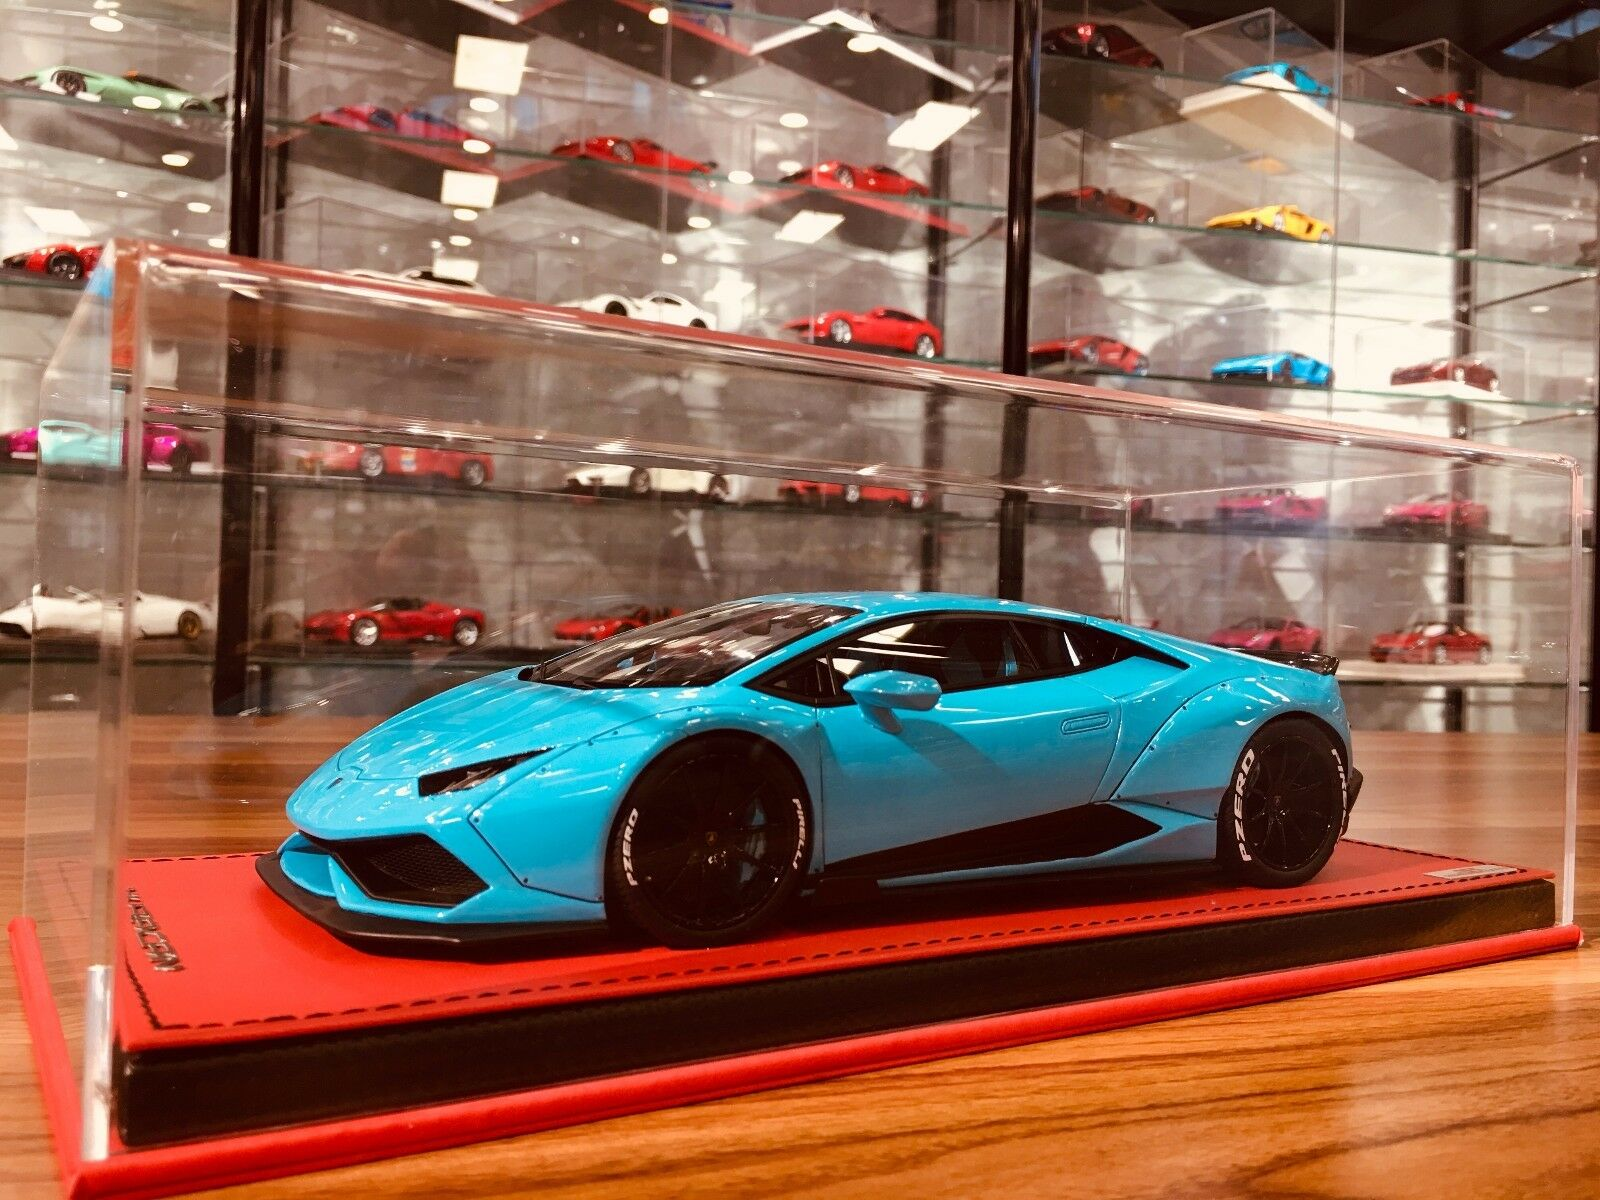 MR LB performance Liberty Walk Huracan 610 Lamborghini 1 18 Baby blu lim 25pcs